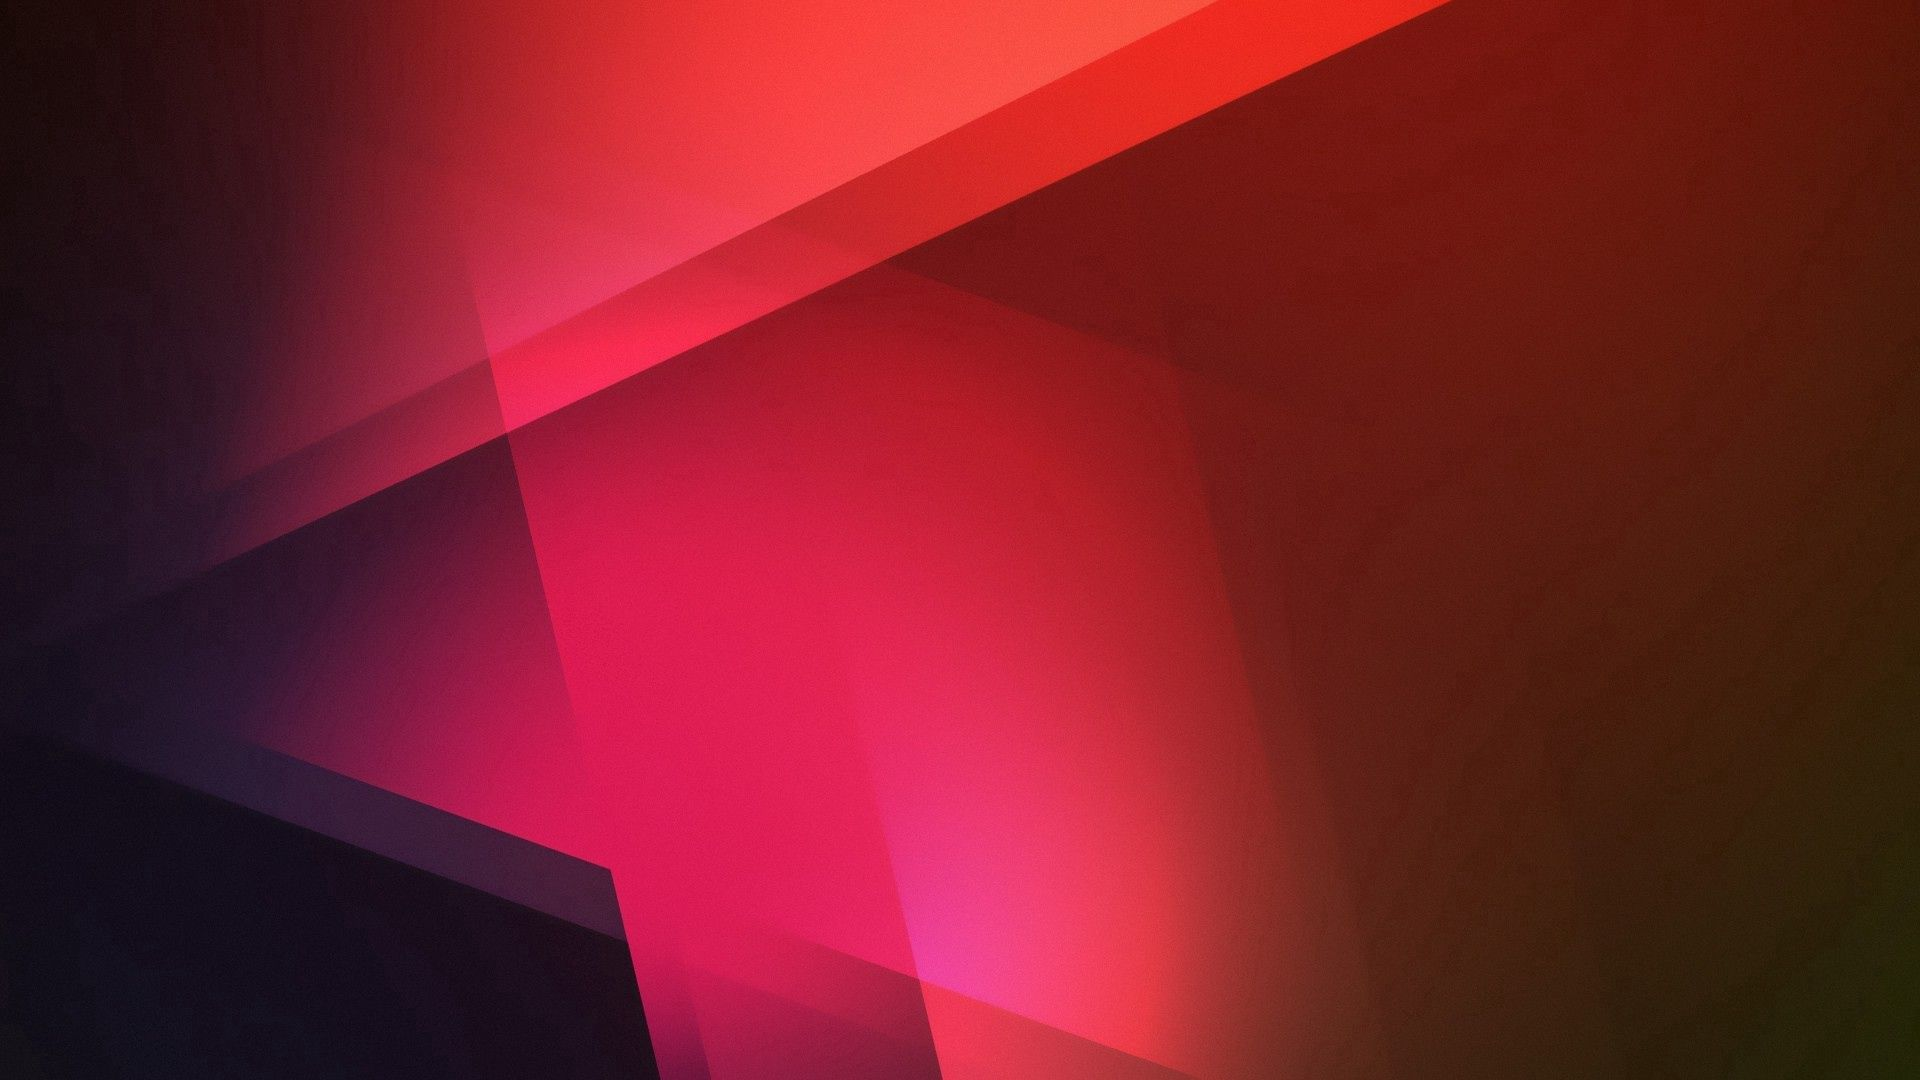 90535 download wallpaper Abstract, Lines, Background, Light Coloured, Light screensavers and pictures for free